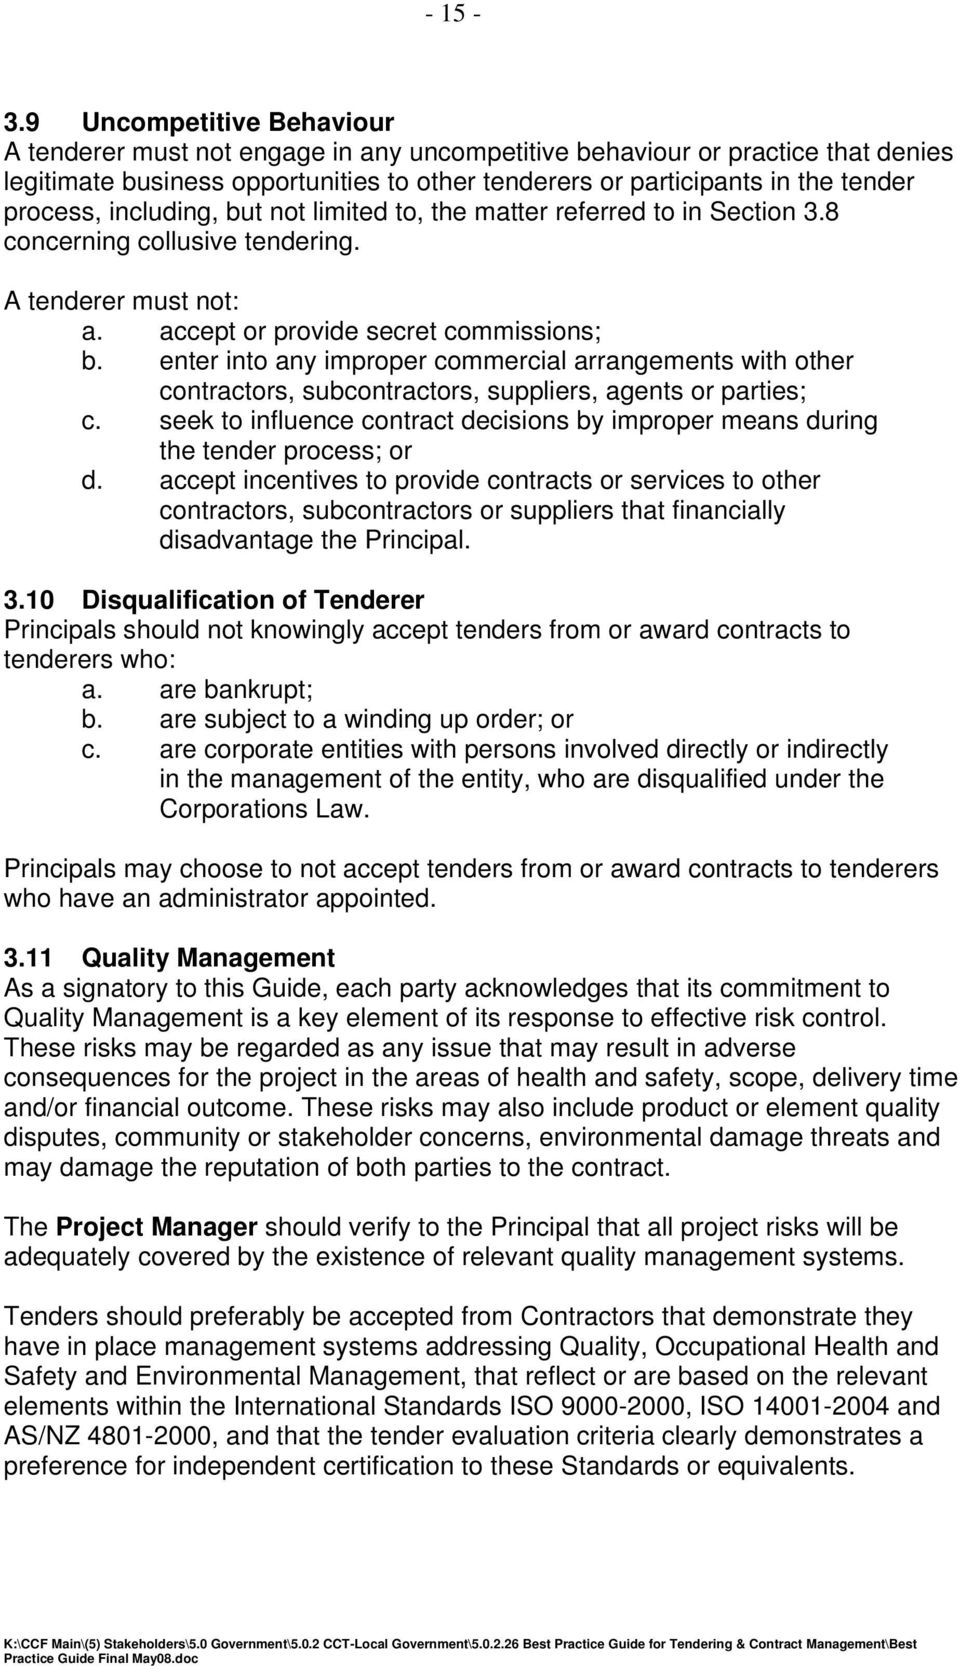 VICTORIAN CIVIL CONSTRUCTION INDUSTRY BEST PRACTICE GUIDE FOR ...